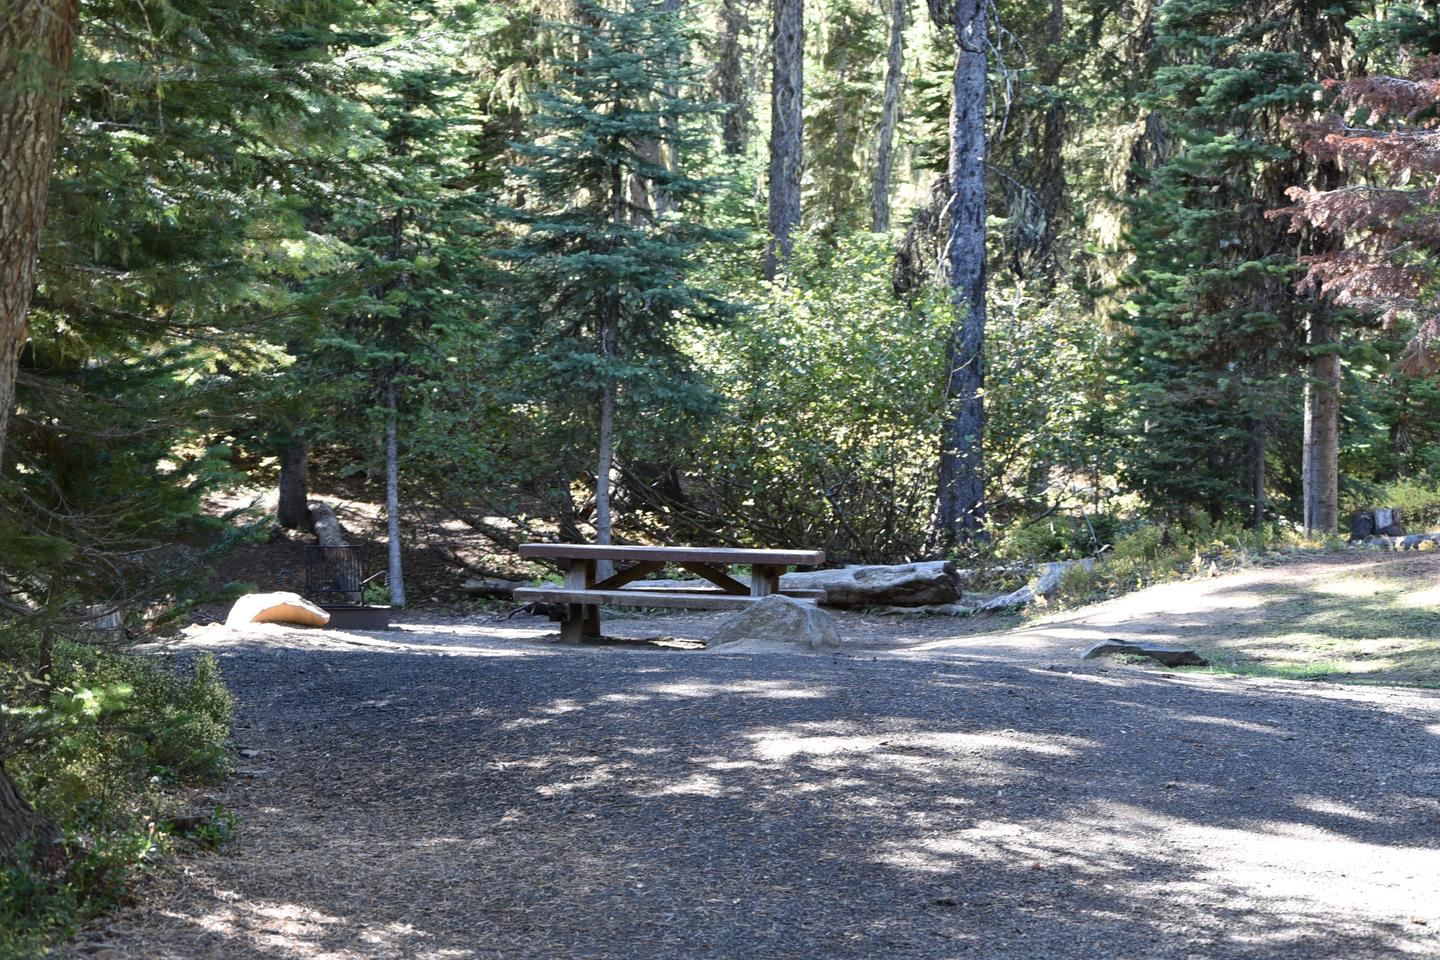 camp site parking area, gravel with view of camp site.Jubilee Lake Campground site #37